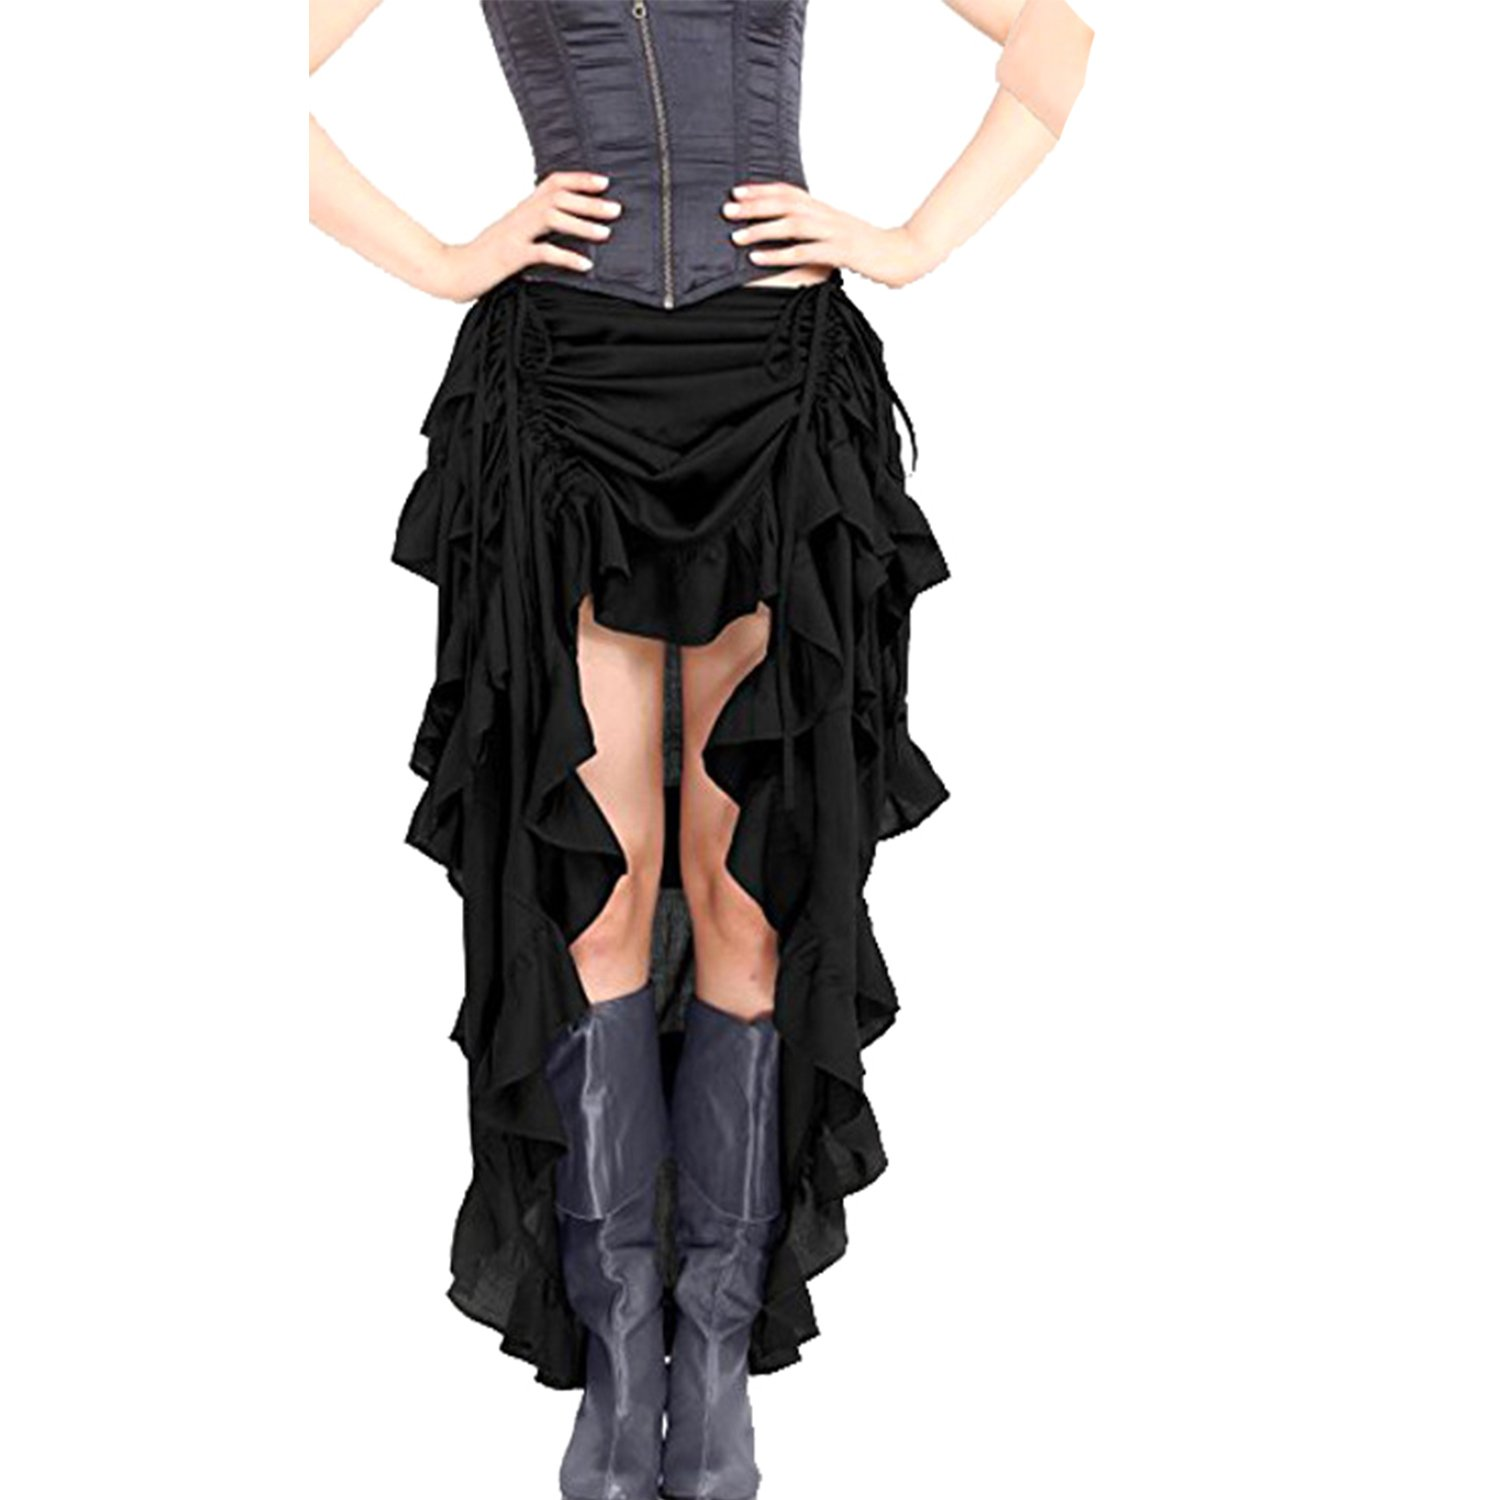 Halloween Gothic Pirate Dress Steampunk Cocktail Party Skirts High-Low (Medium, Black)